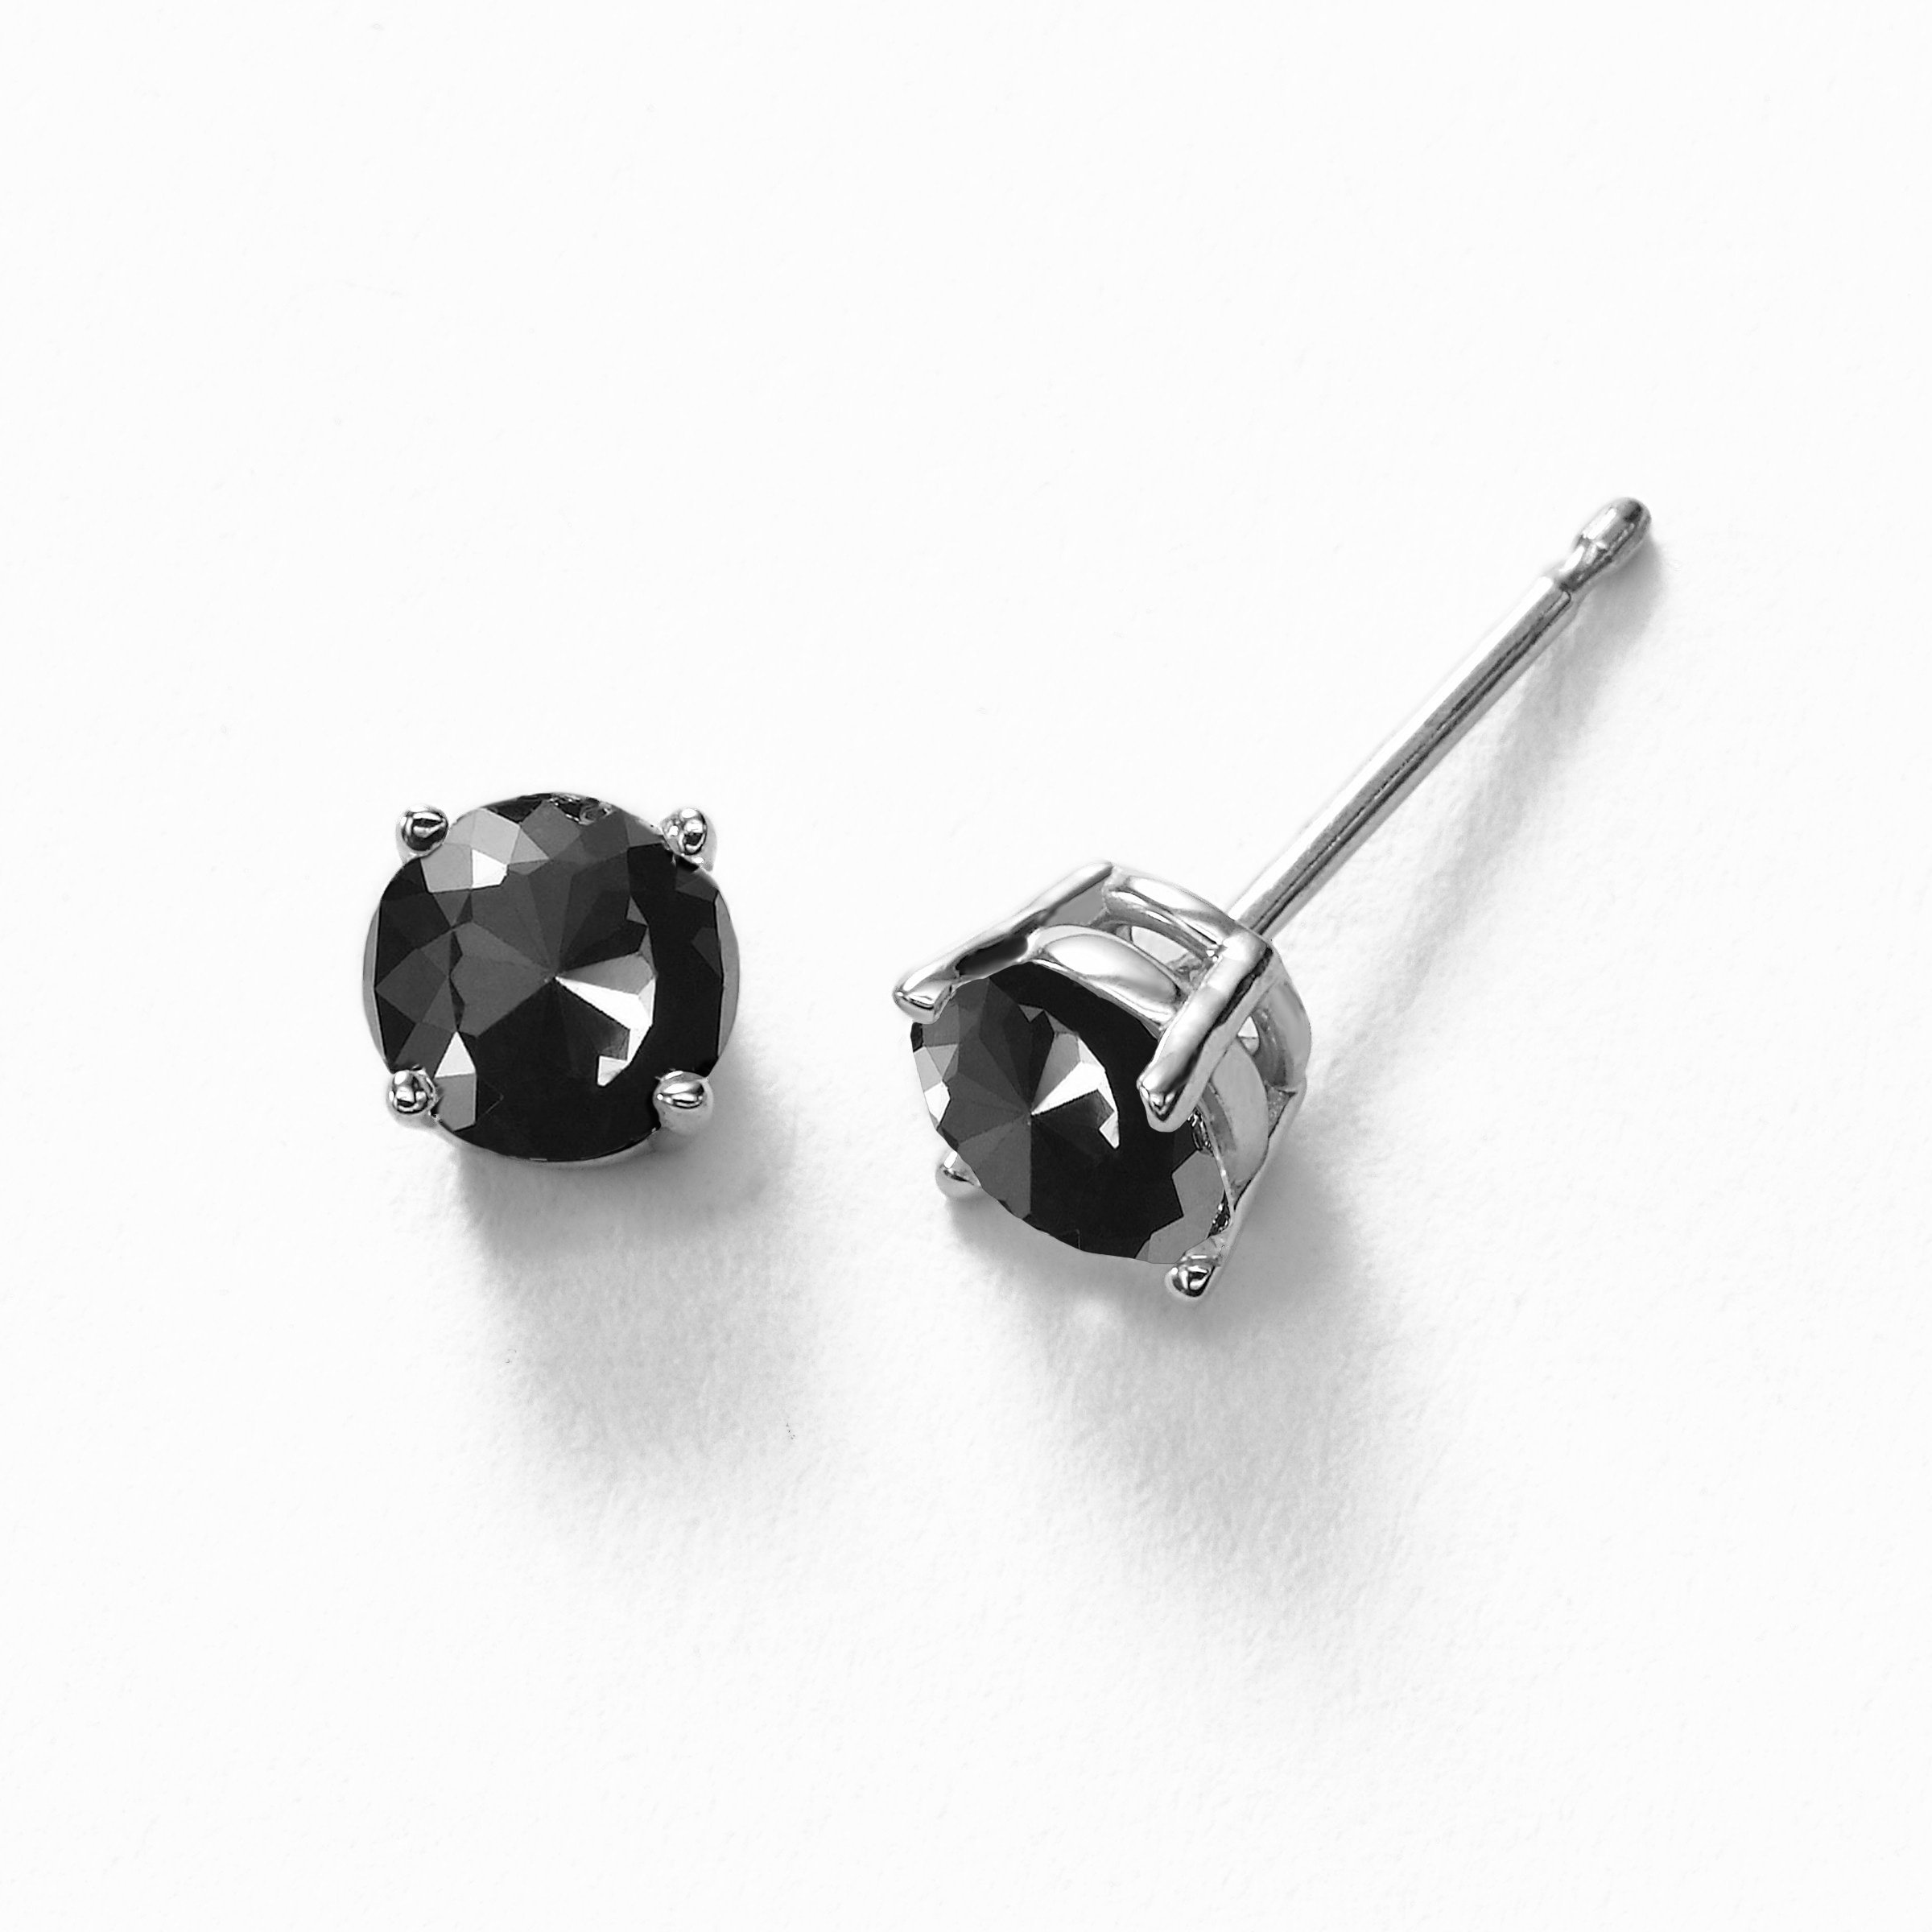 1e5200e6c 1.00 Carat Black Diamond Stud Earring For Men's 1.50 Carat Stud Earrings  For Men Crafted In 14k White Gold 1.50 Diamond Square Cluster Stud Earrings  Fro ...